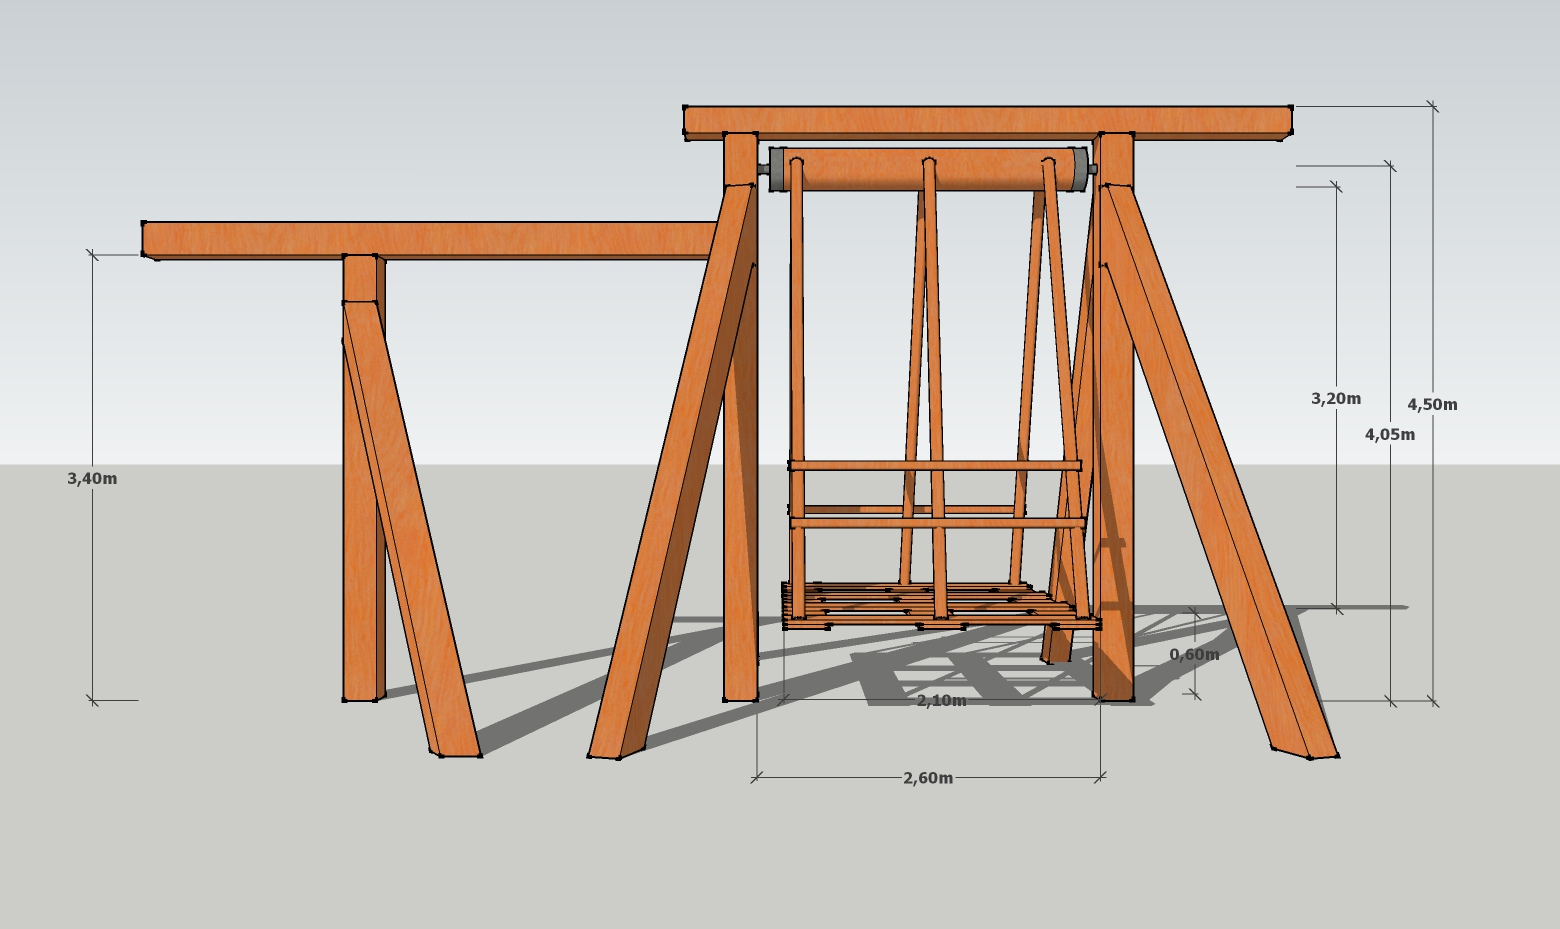 Picture of Photos and Plans for the Village Swing